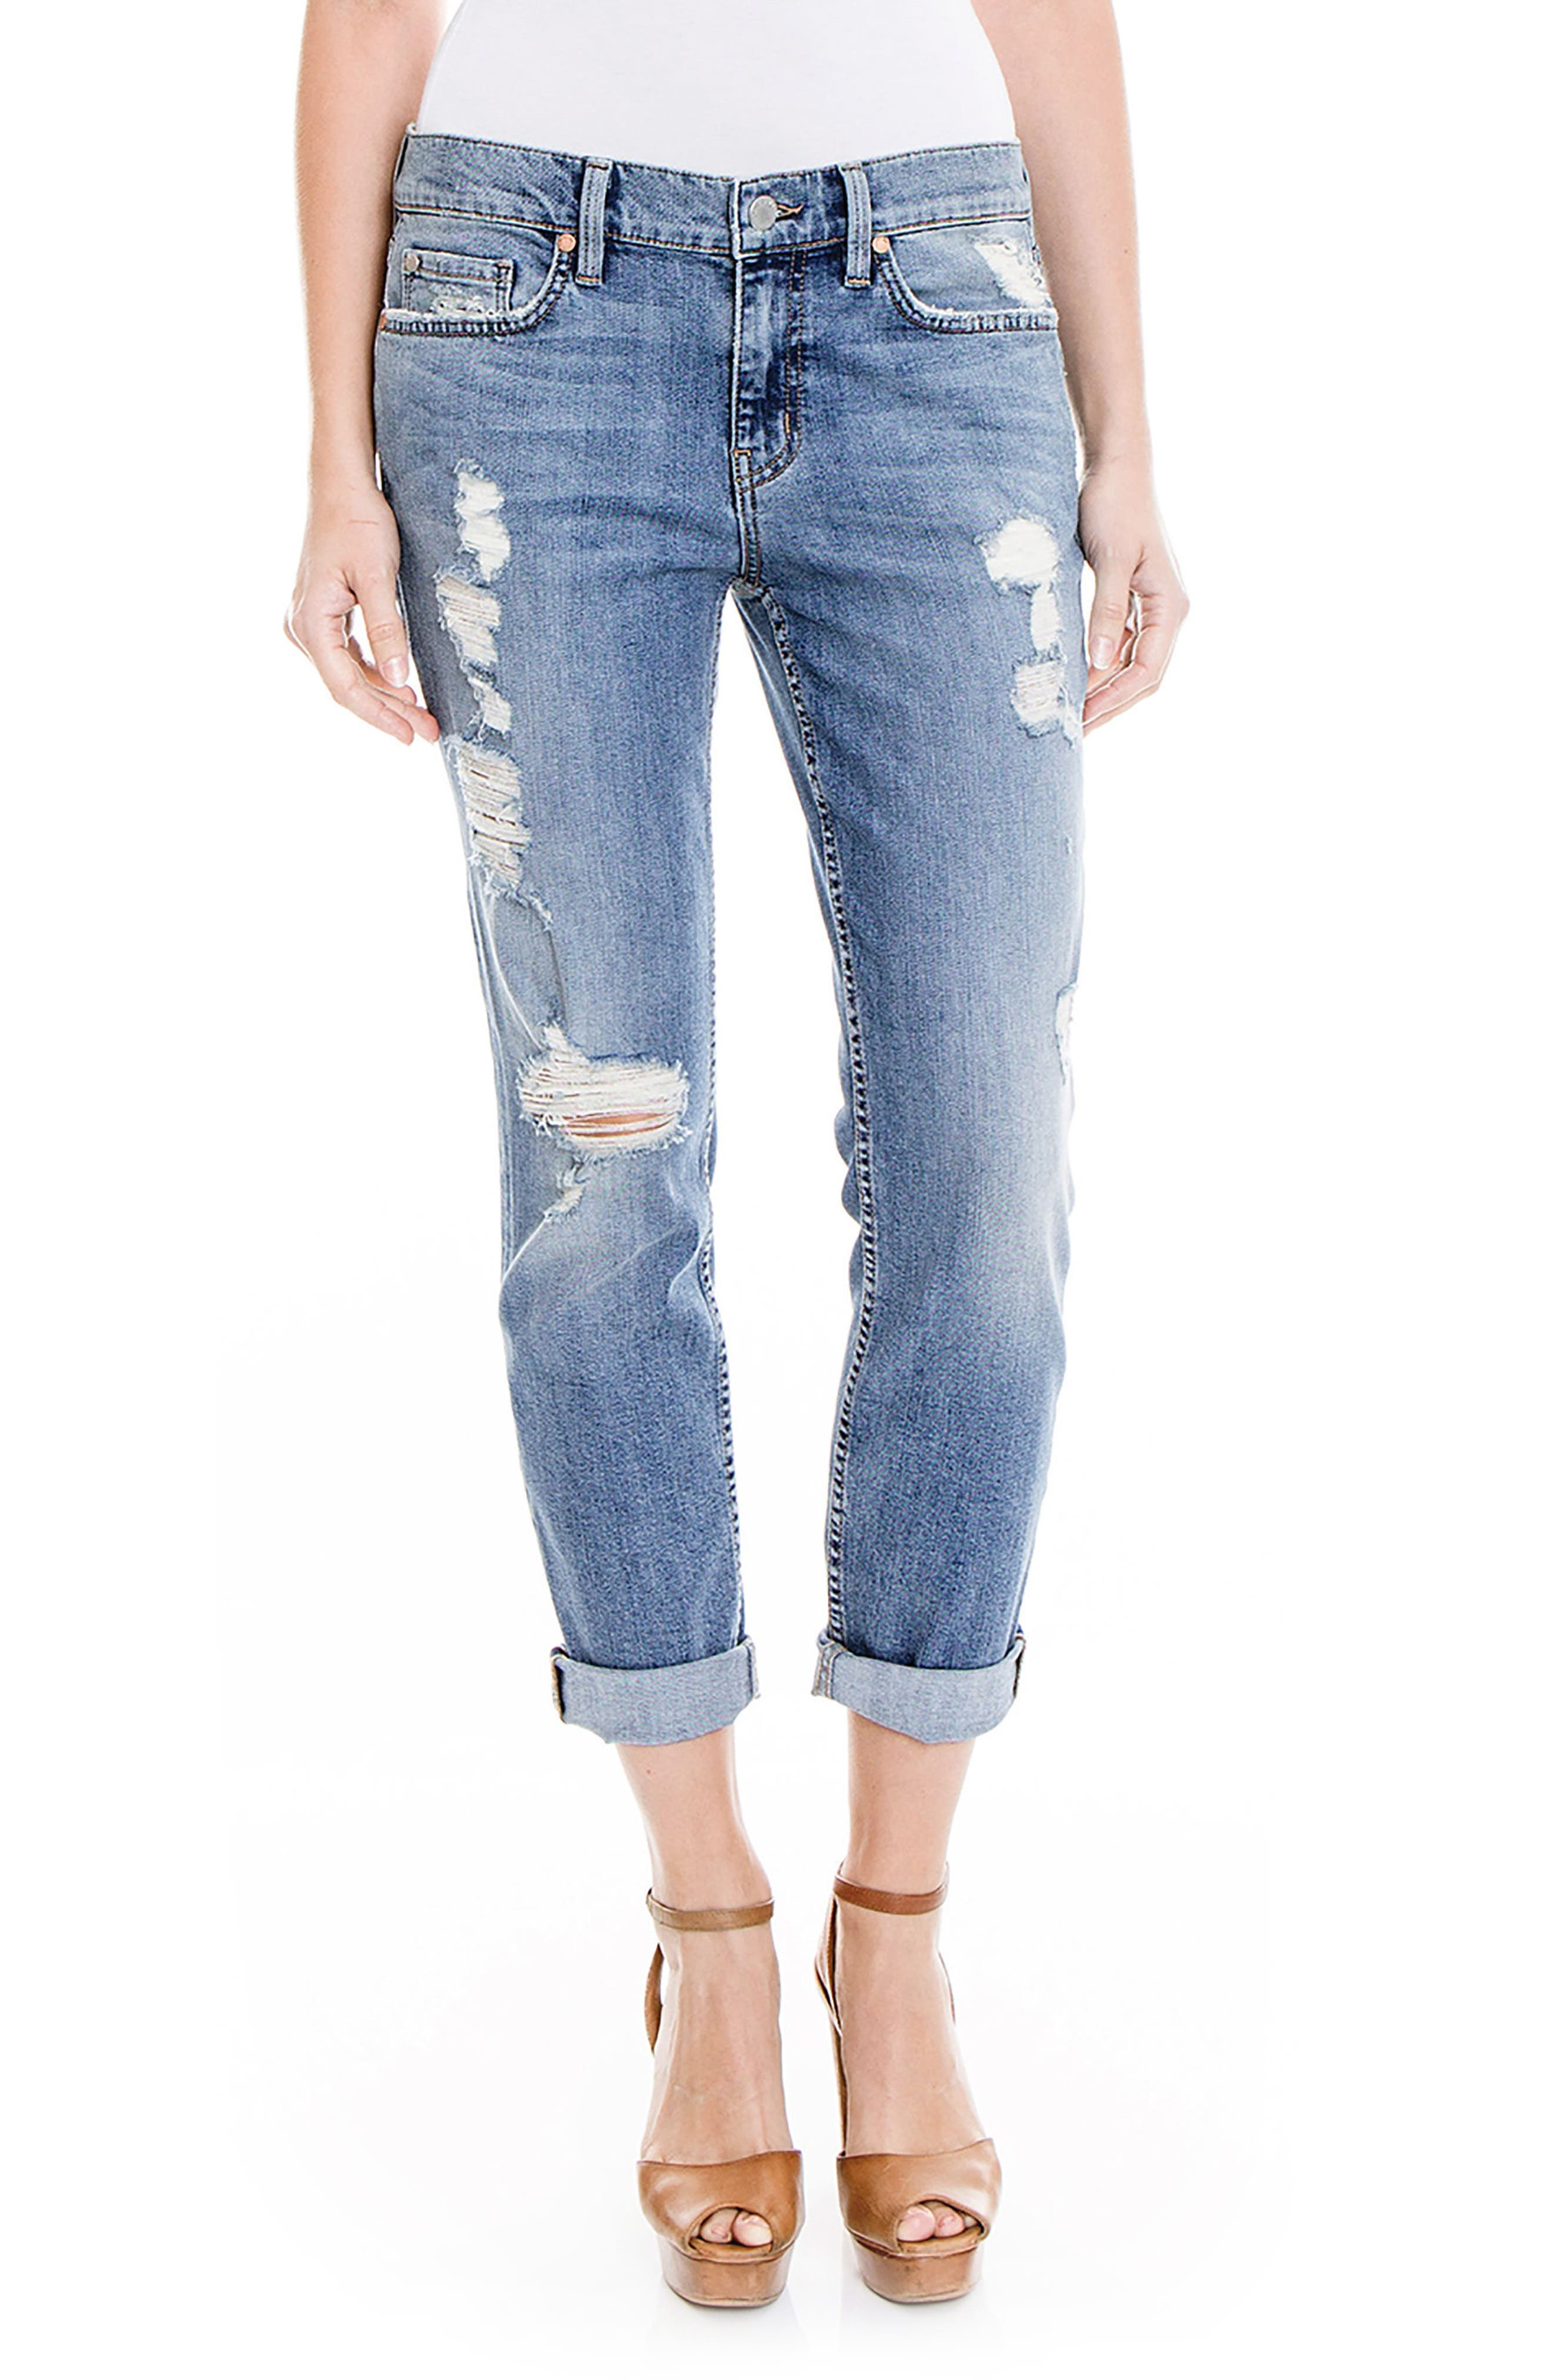 Sienna Stretch Ankle Jeans,                         Main,                         color, Crosby Beach